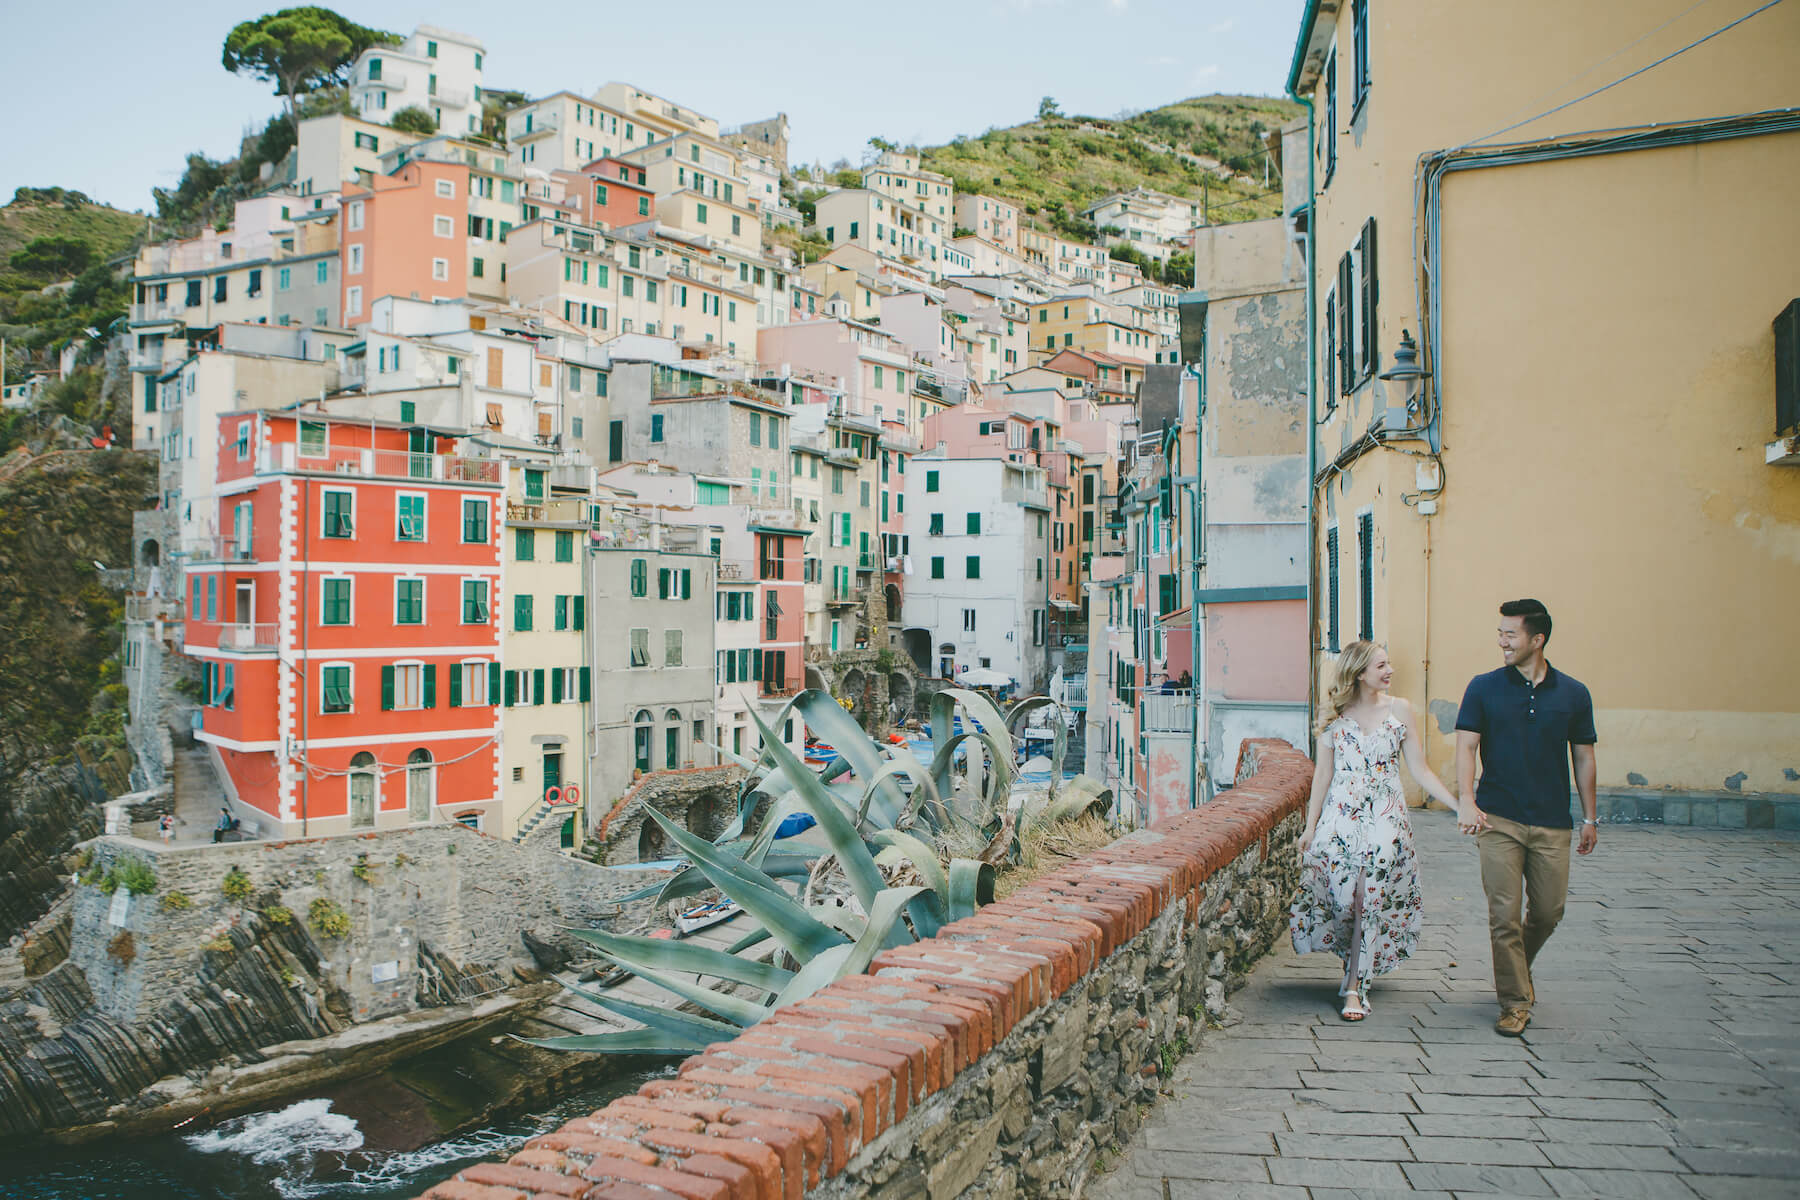 a couple walking and holding hands, with the background being colourful cliffside houses in Cinque Terre, Italy